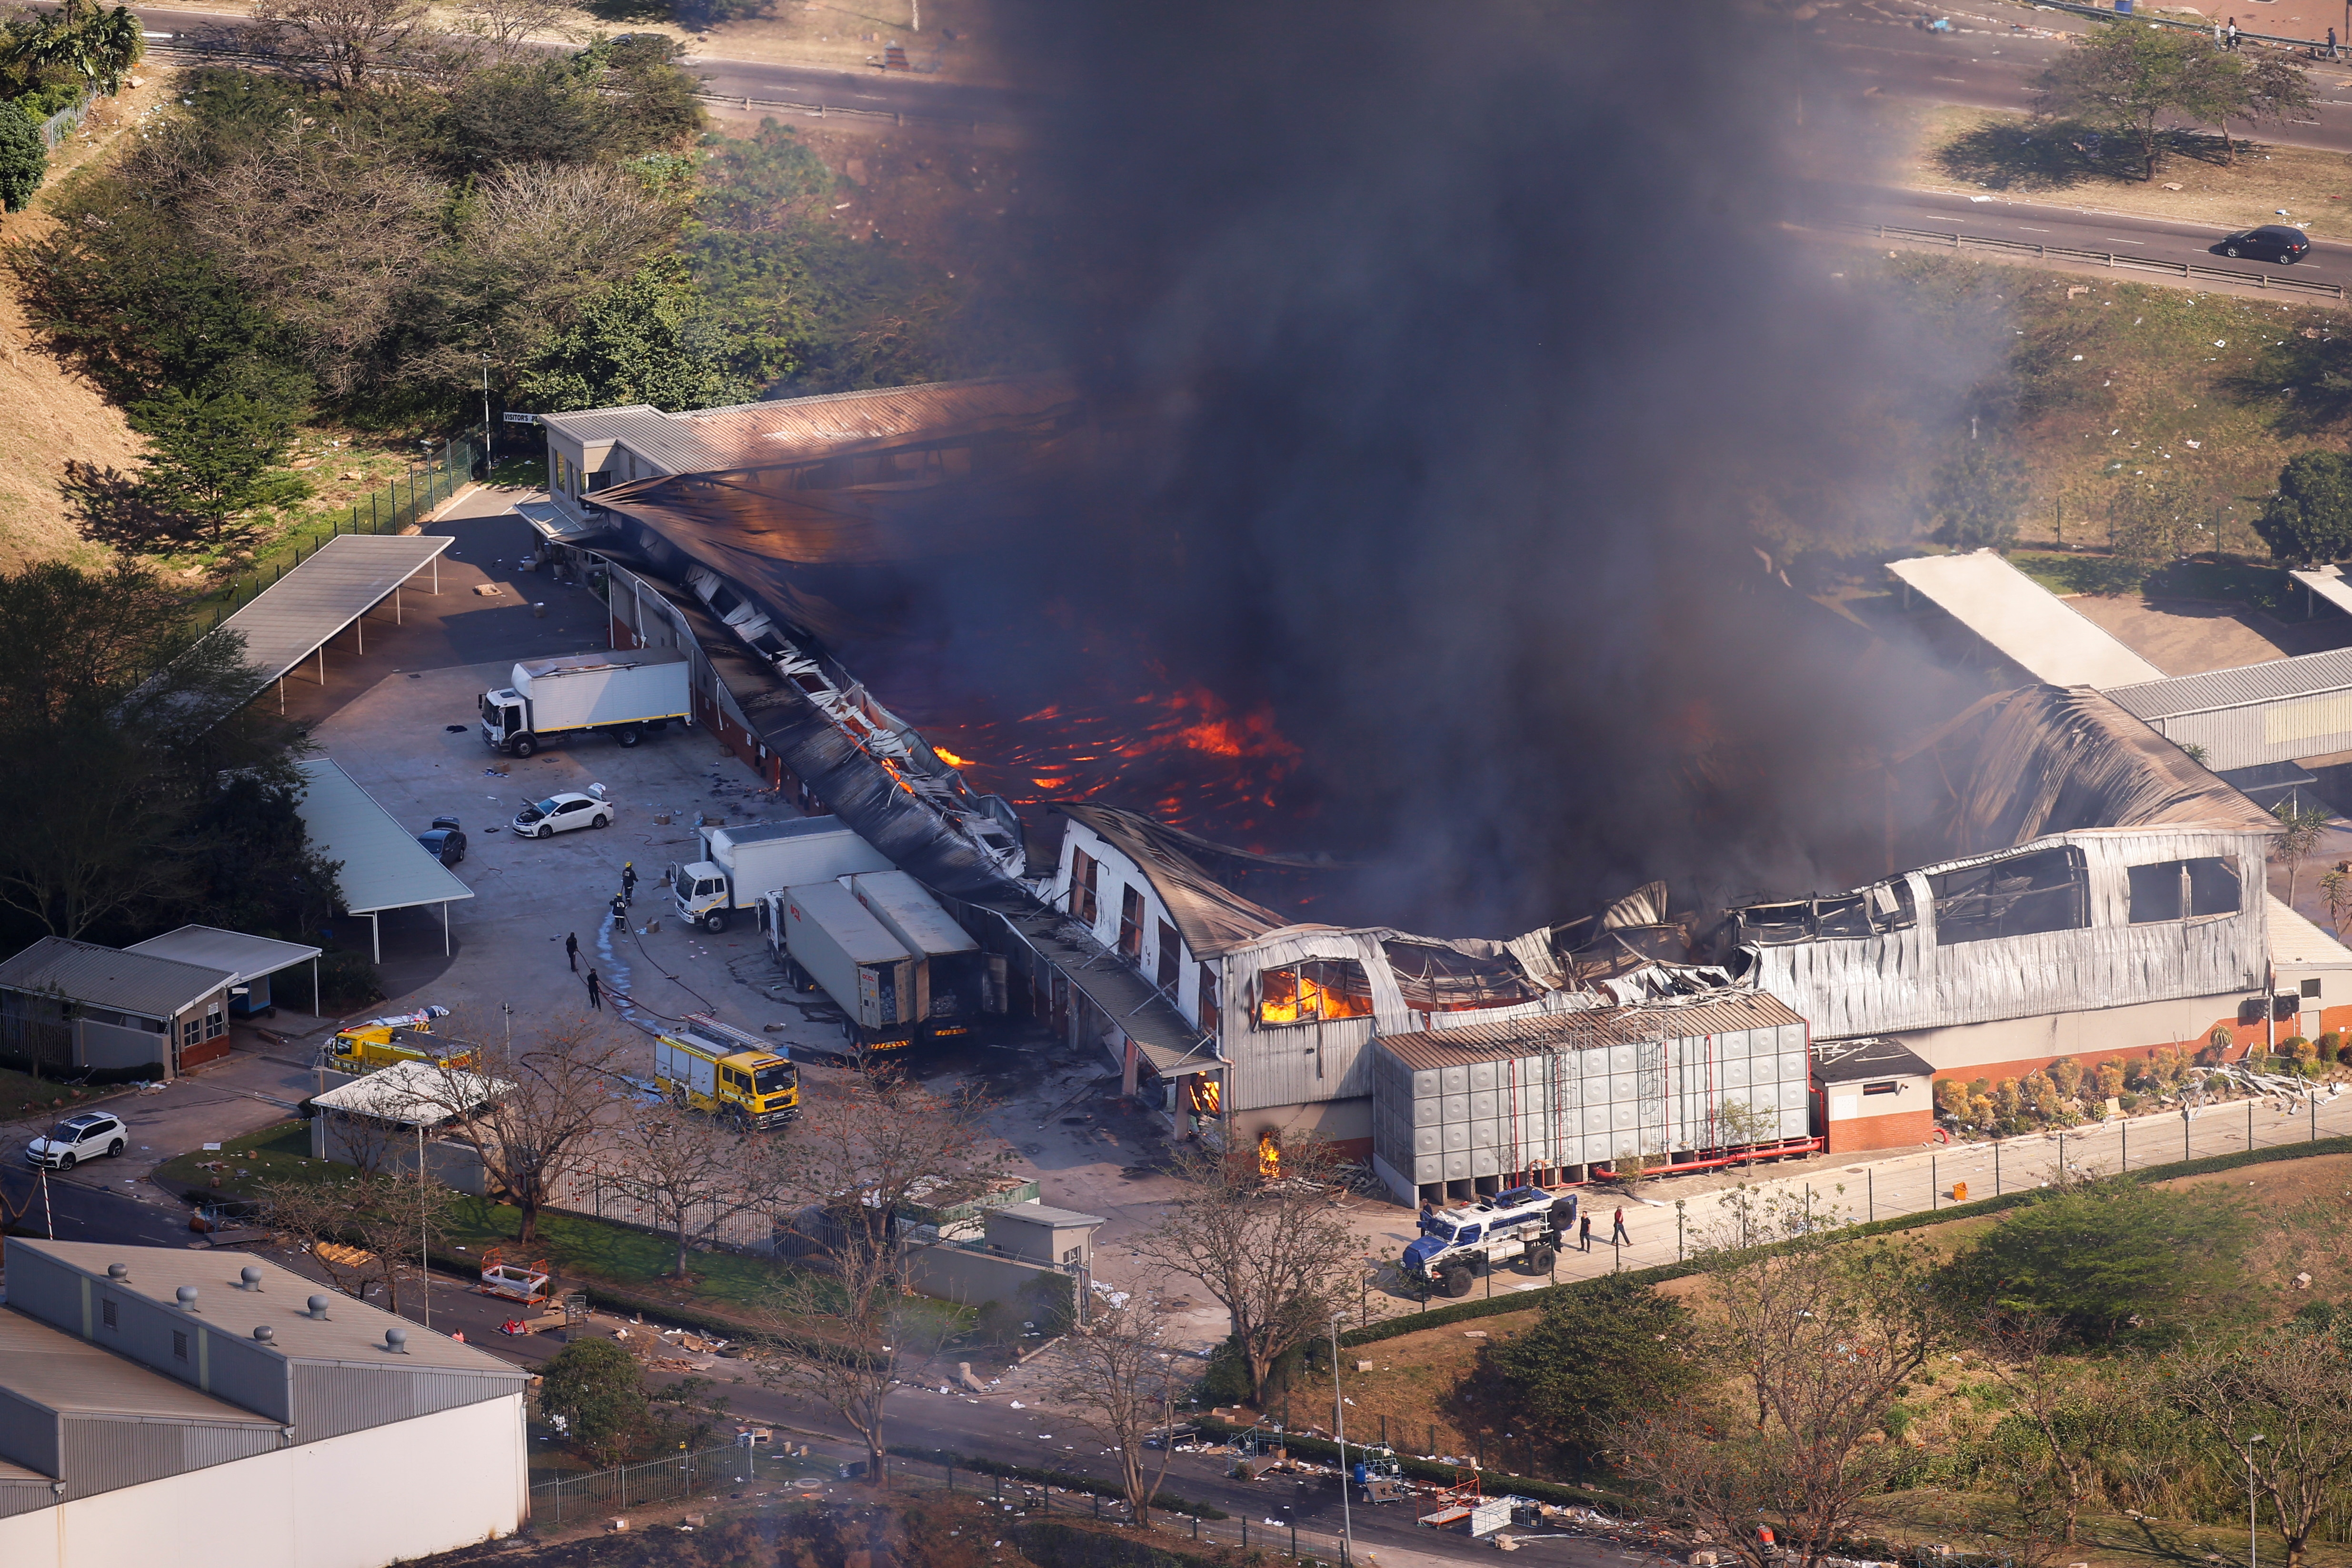 A general view of the burning warehouse after violence erupted following the jailing of former South African President Jacob Zuma, in Durban, South Africa, July 14, 2021. REUTERS/Rogan Ward